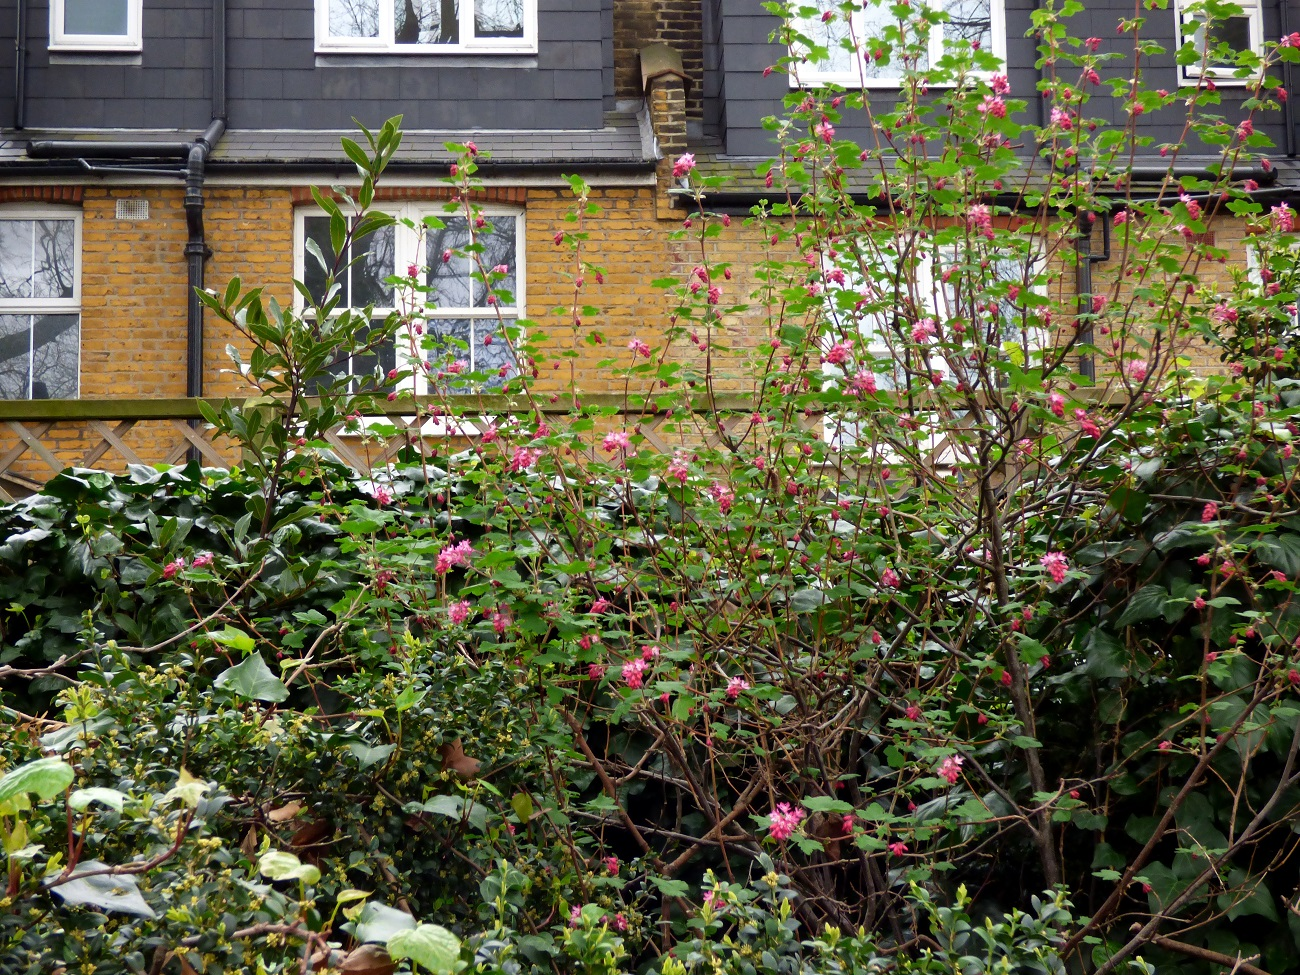 20170320_Tower-Hamlets_Grove-Hall-Park_Spring-Bushes